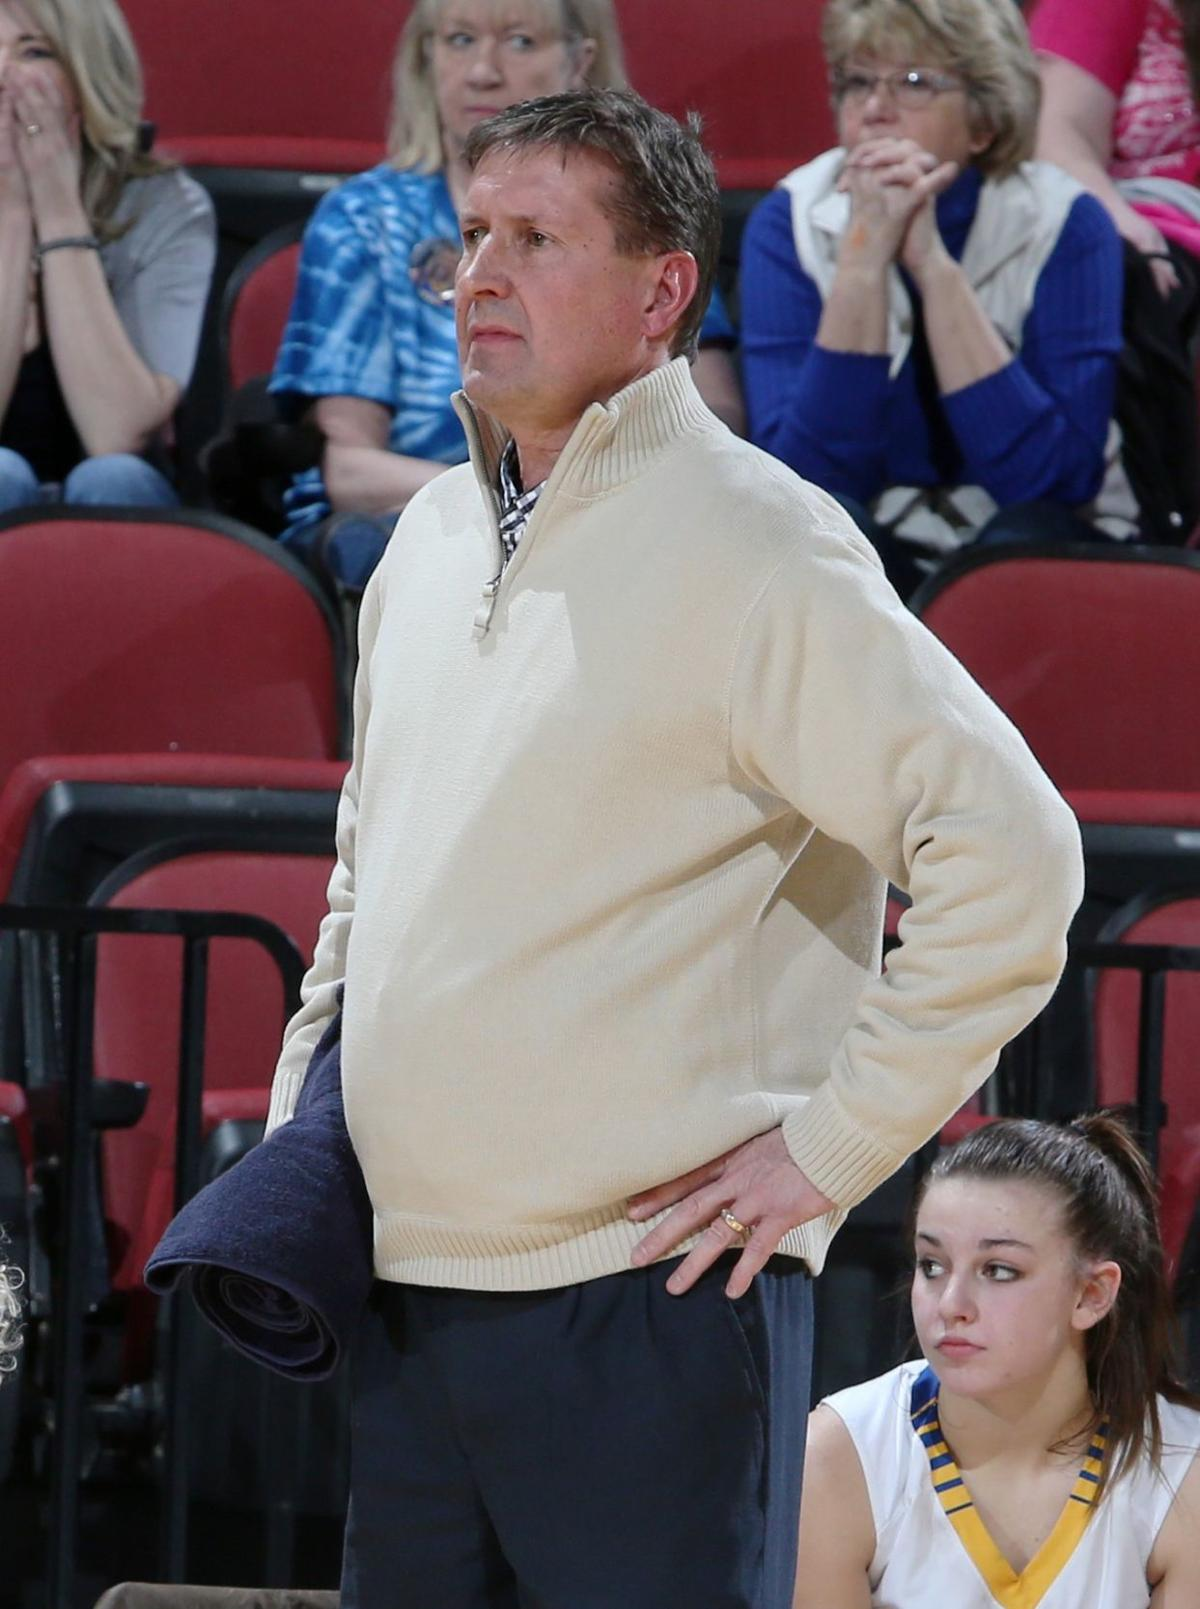 Coach Bill Lepley